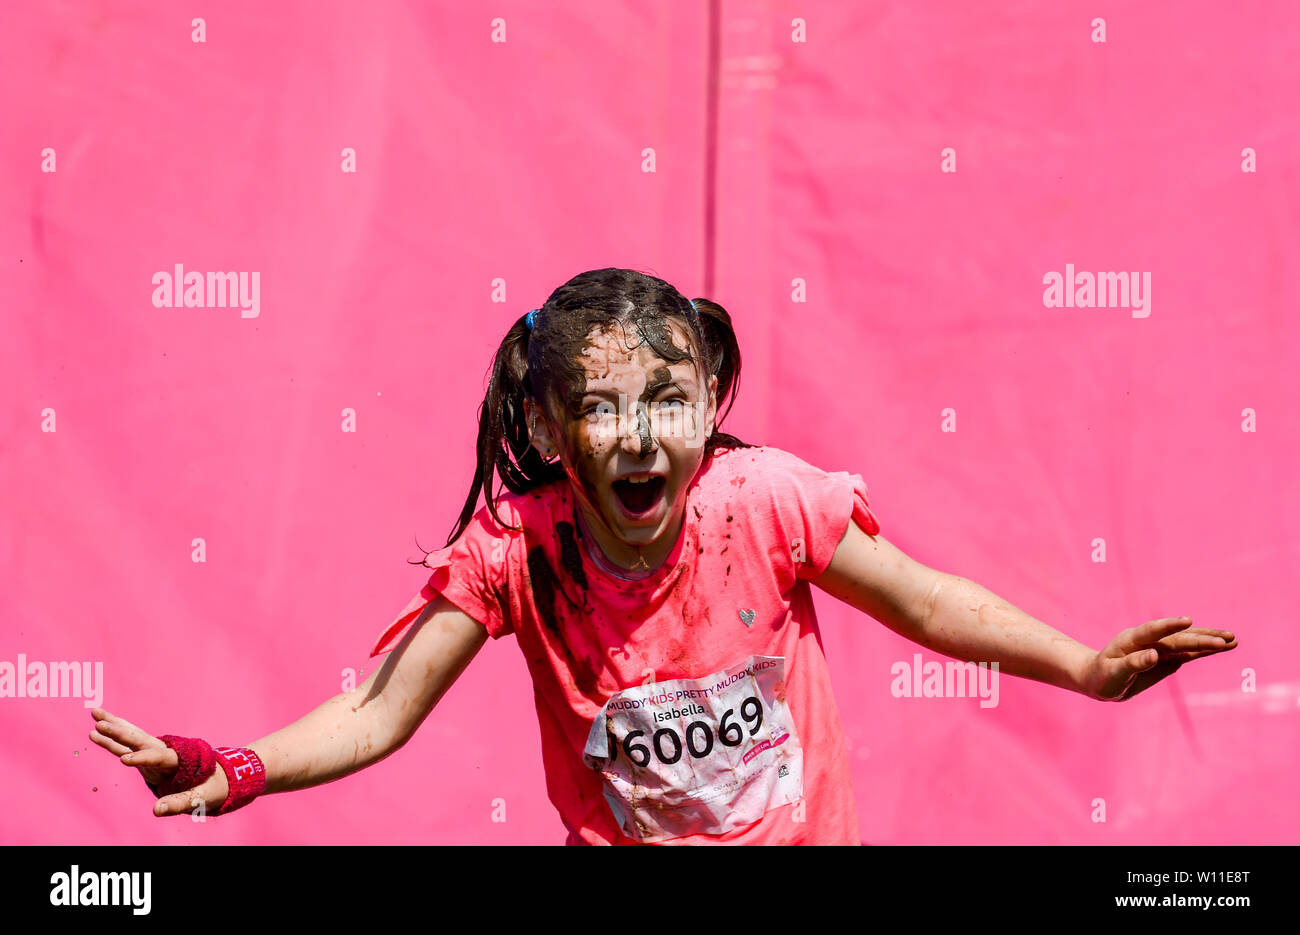 Brighton UK 29th June 2019 - Over a thousand take part  in hot sunny heatwave conditions in the Cancer Research UK Pretty Muddy event in Stanmer Park Brighton . Participants run an obstacle course with mud baths included en route raising money for the charity . Credit: Simon Dack / Alamy Live News - Stock Image